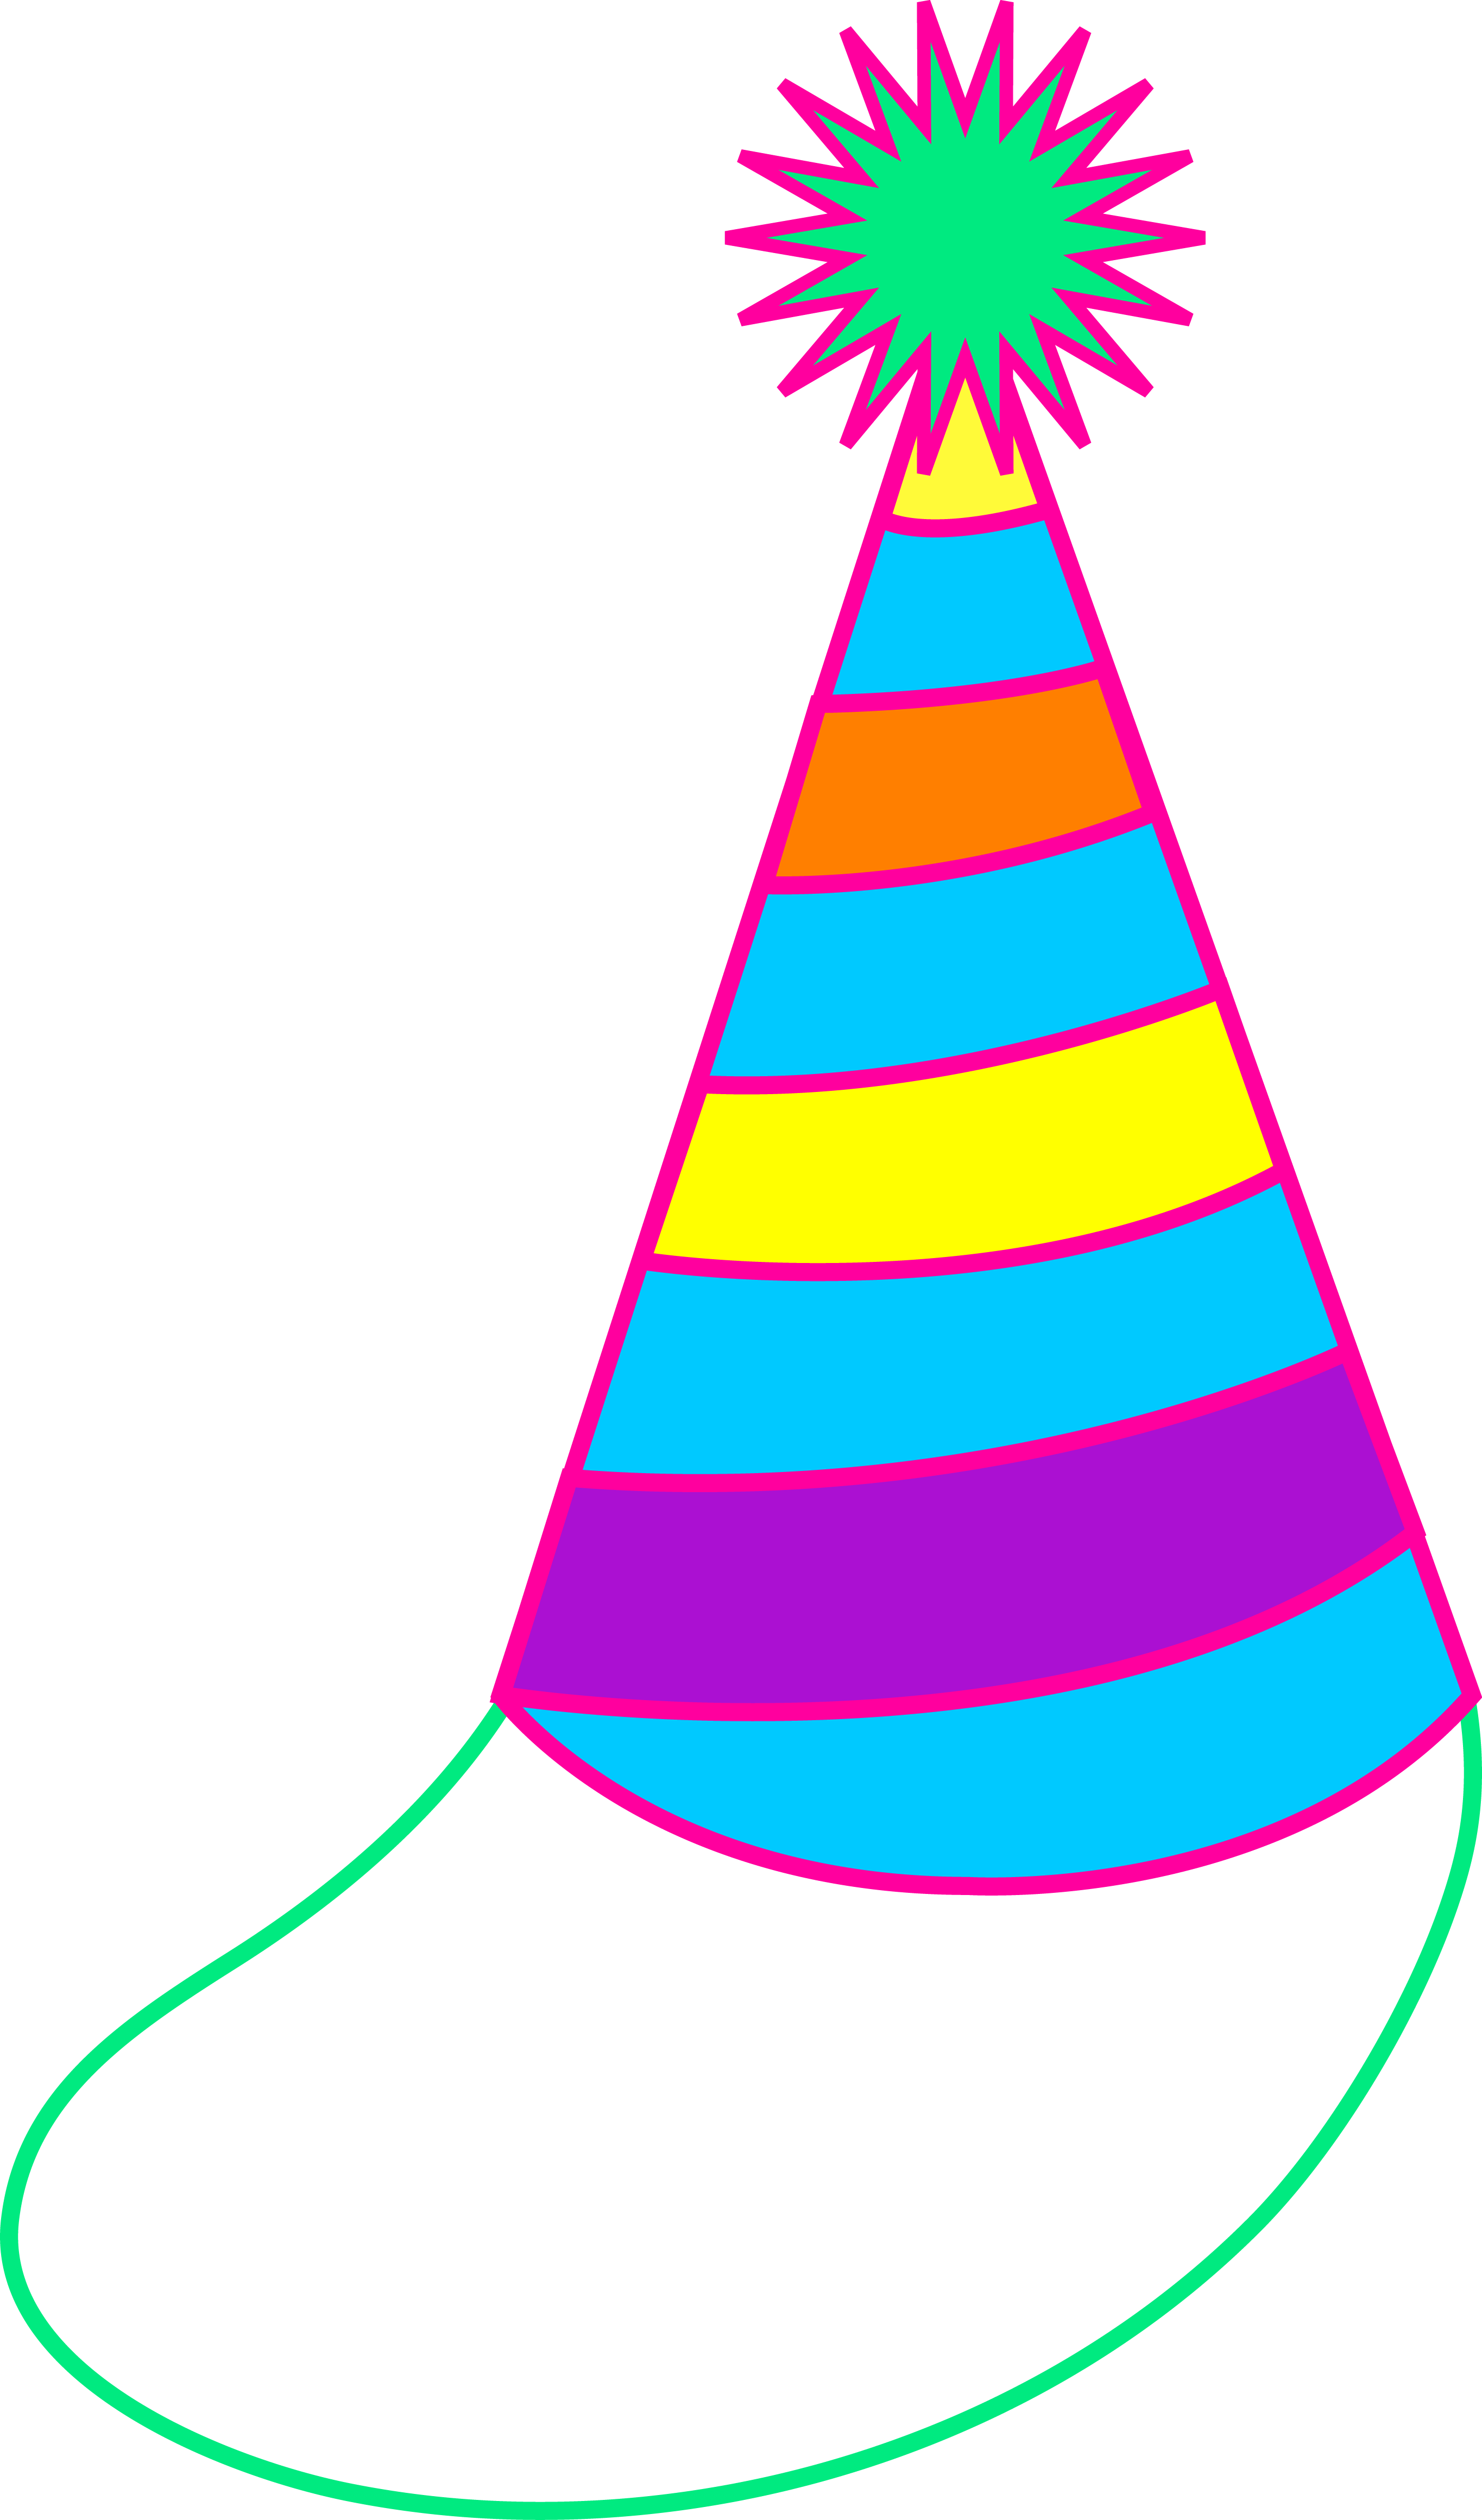 Birthday hat clipart free images 4